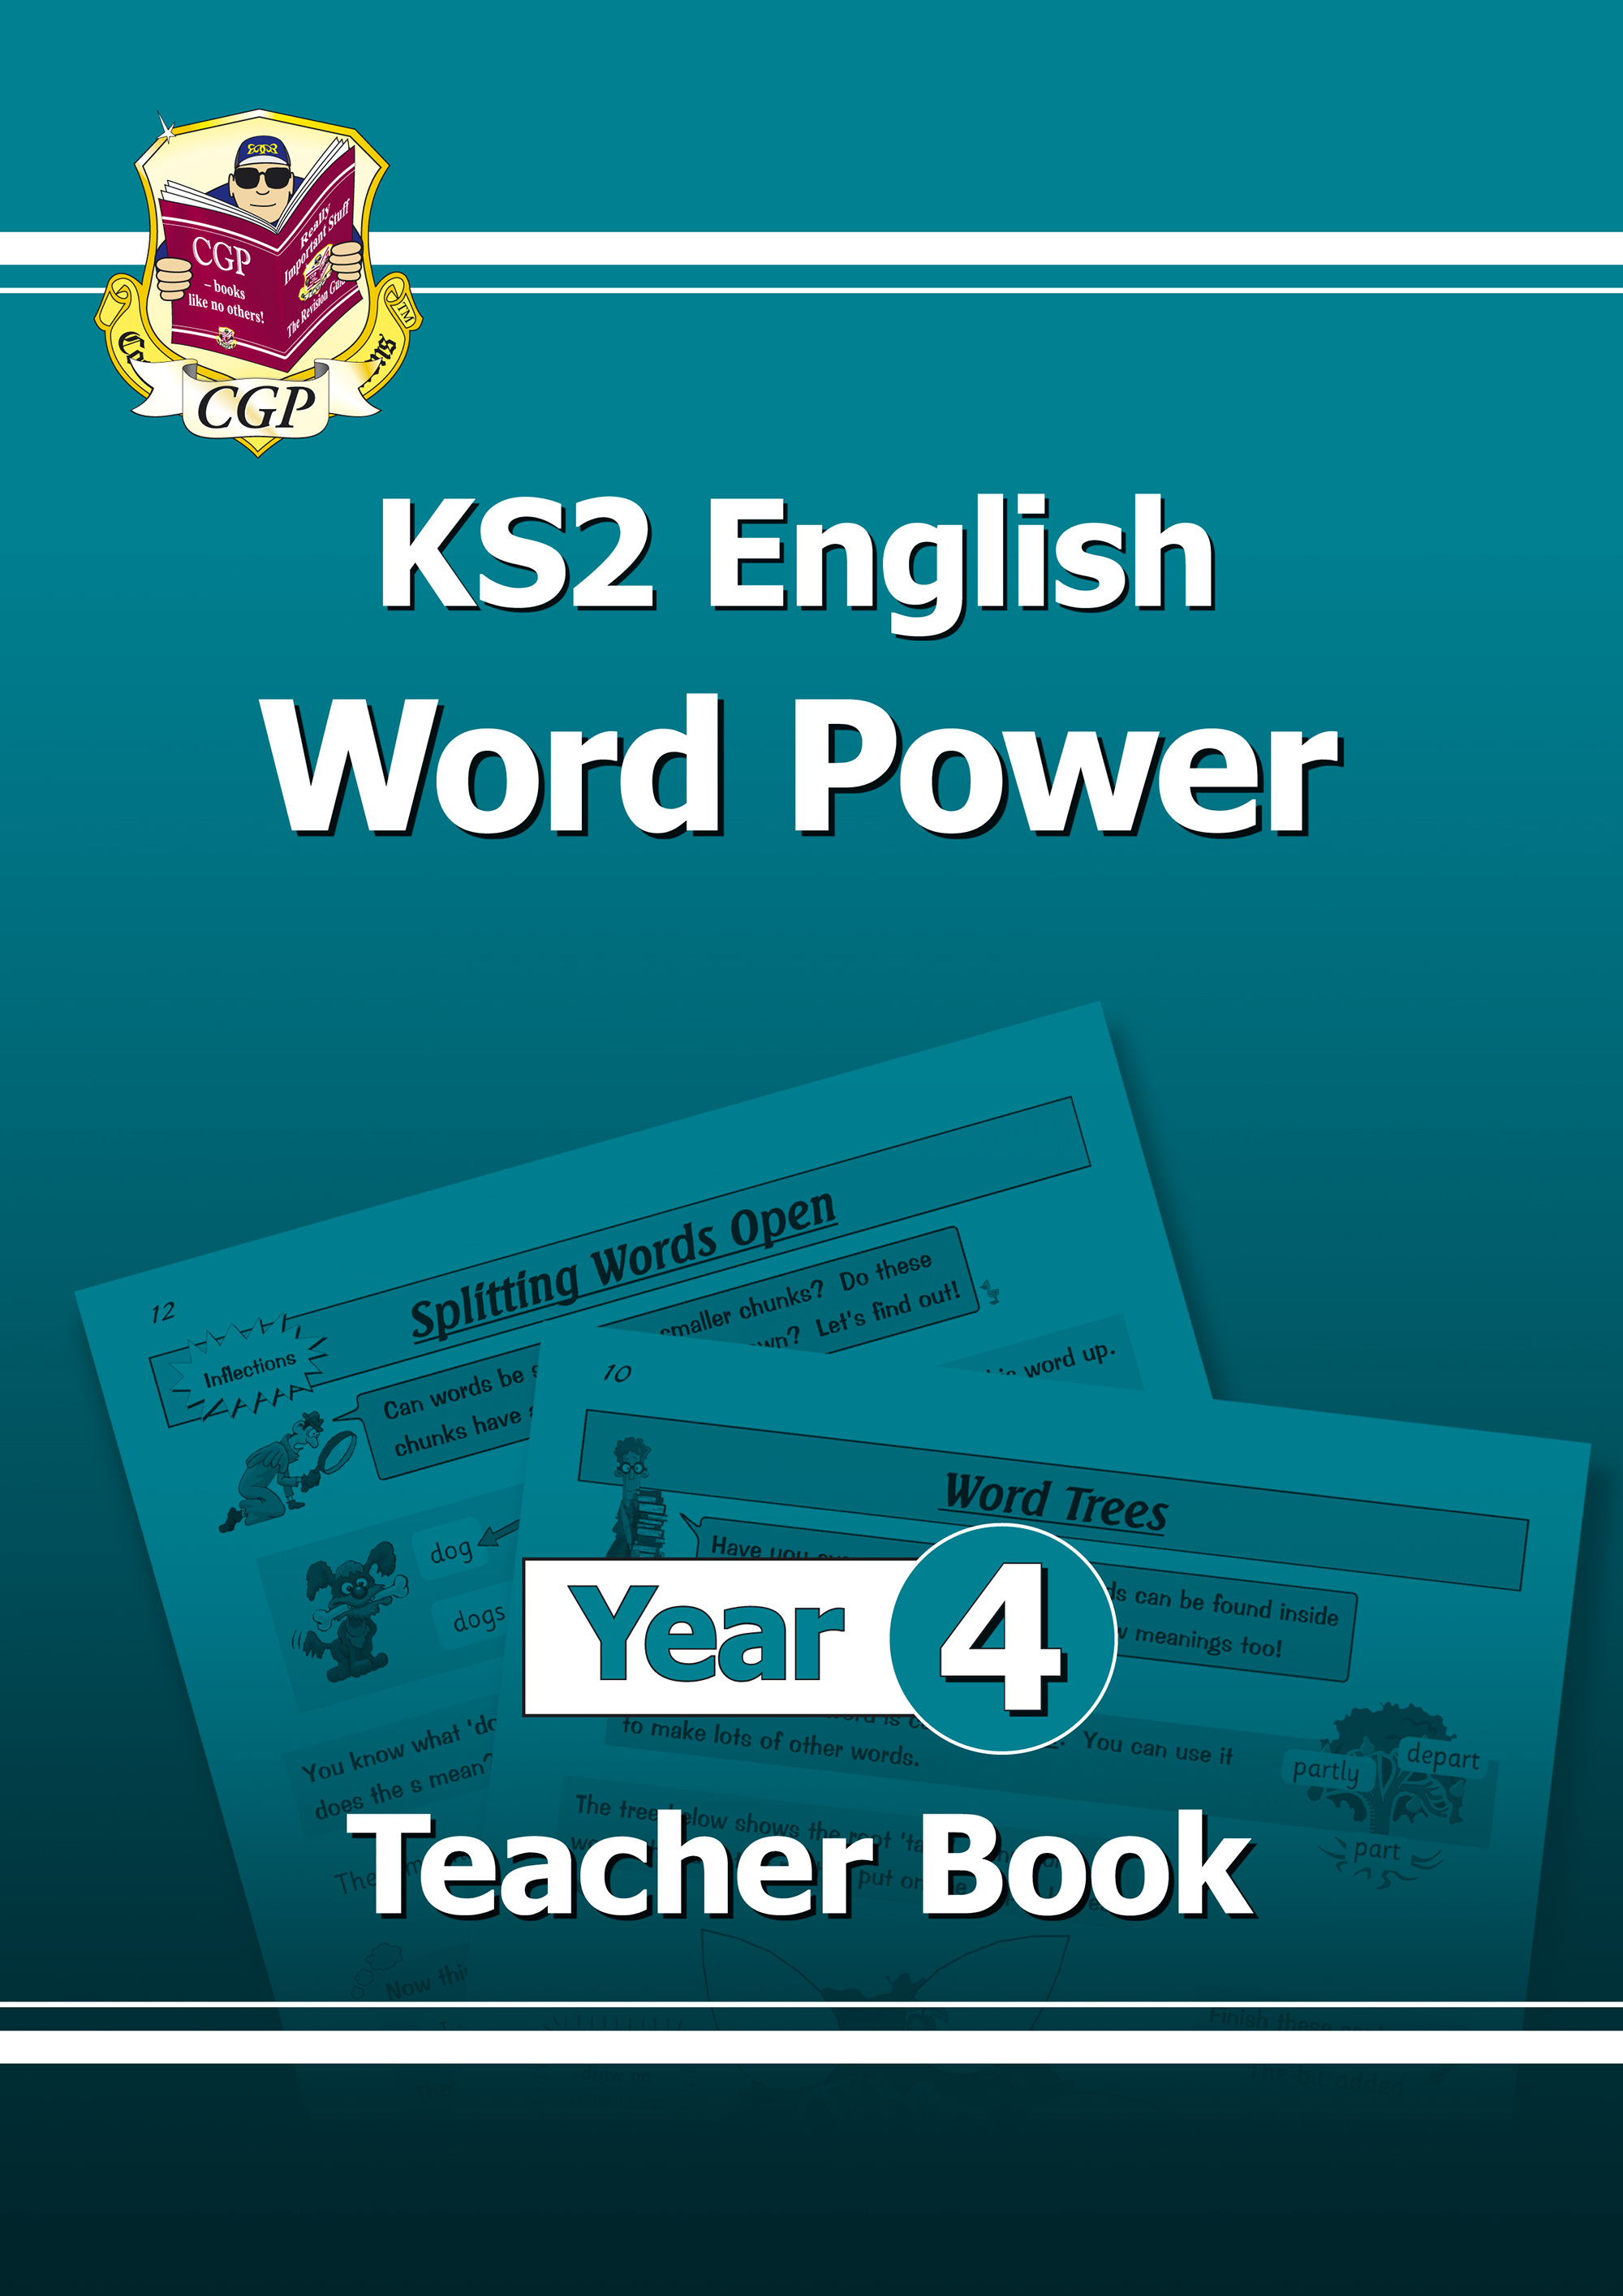 E4WPT21 - KS2 English Word Power: Teacher Book - Year 4